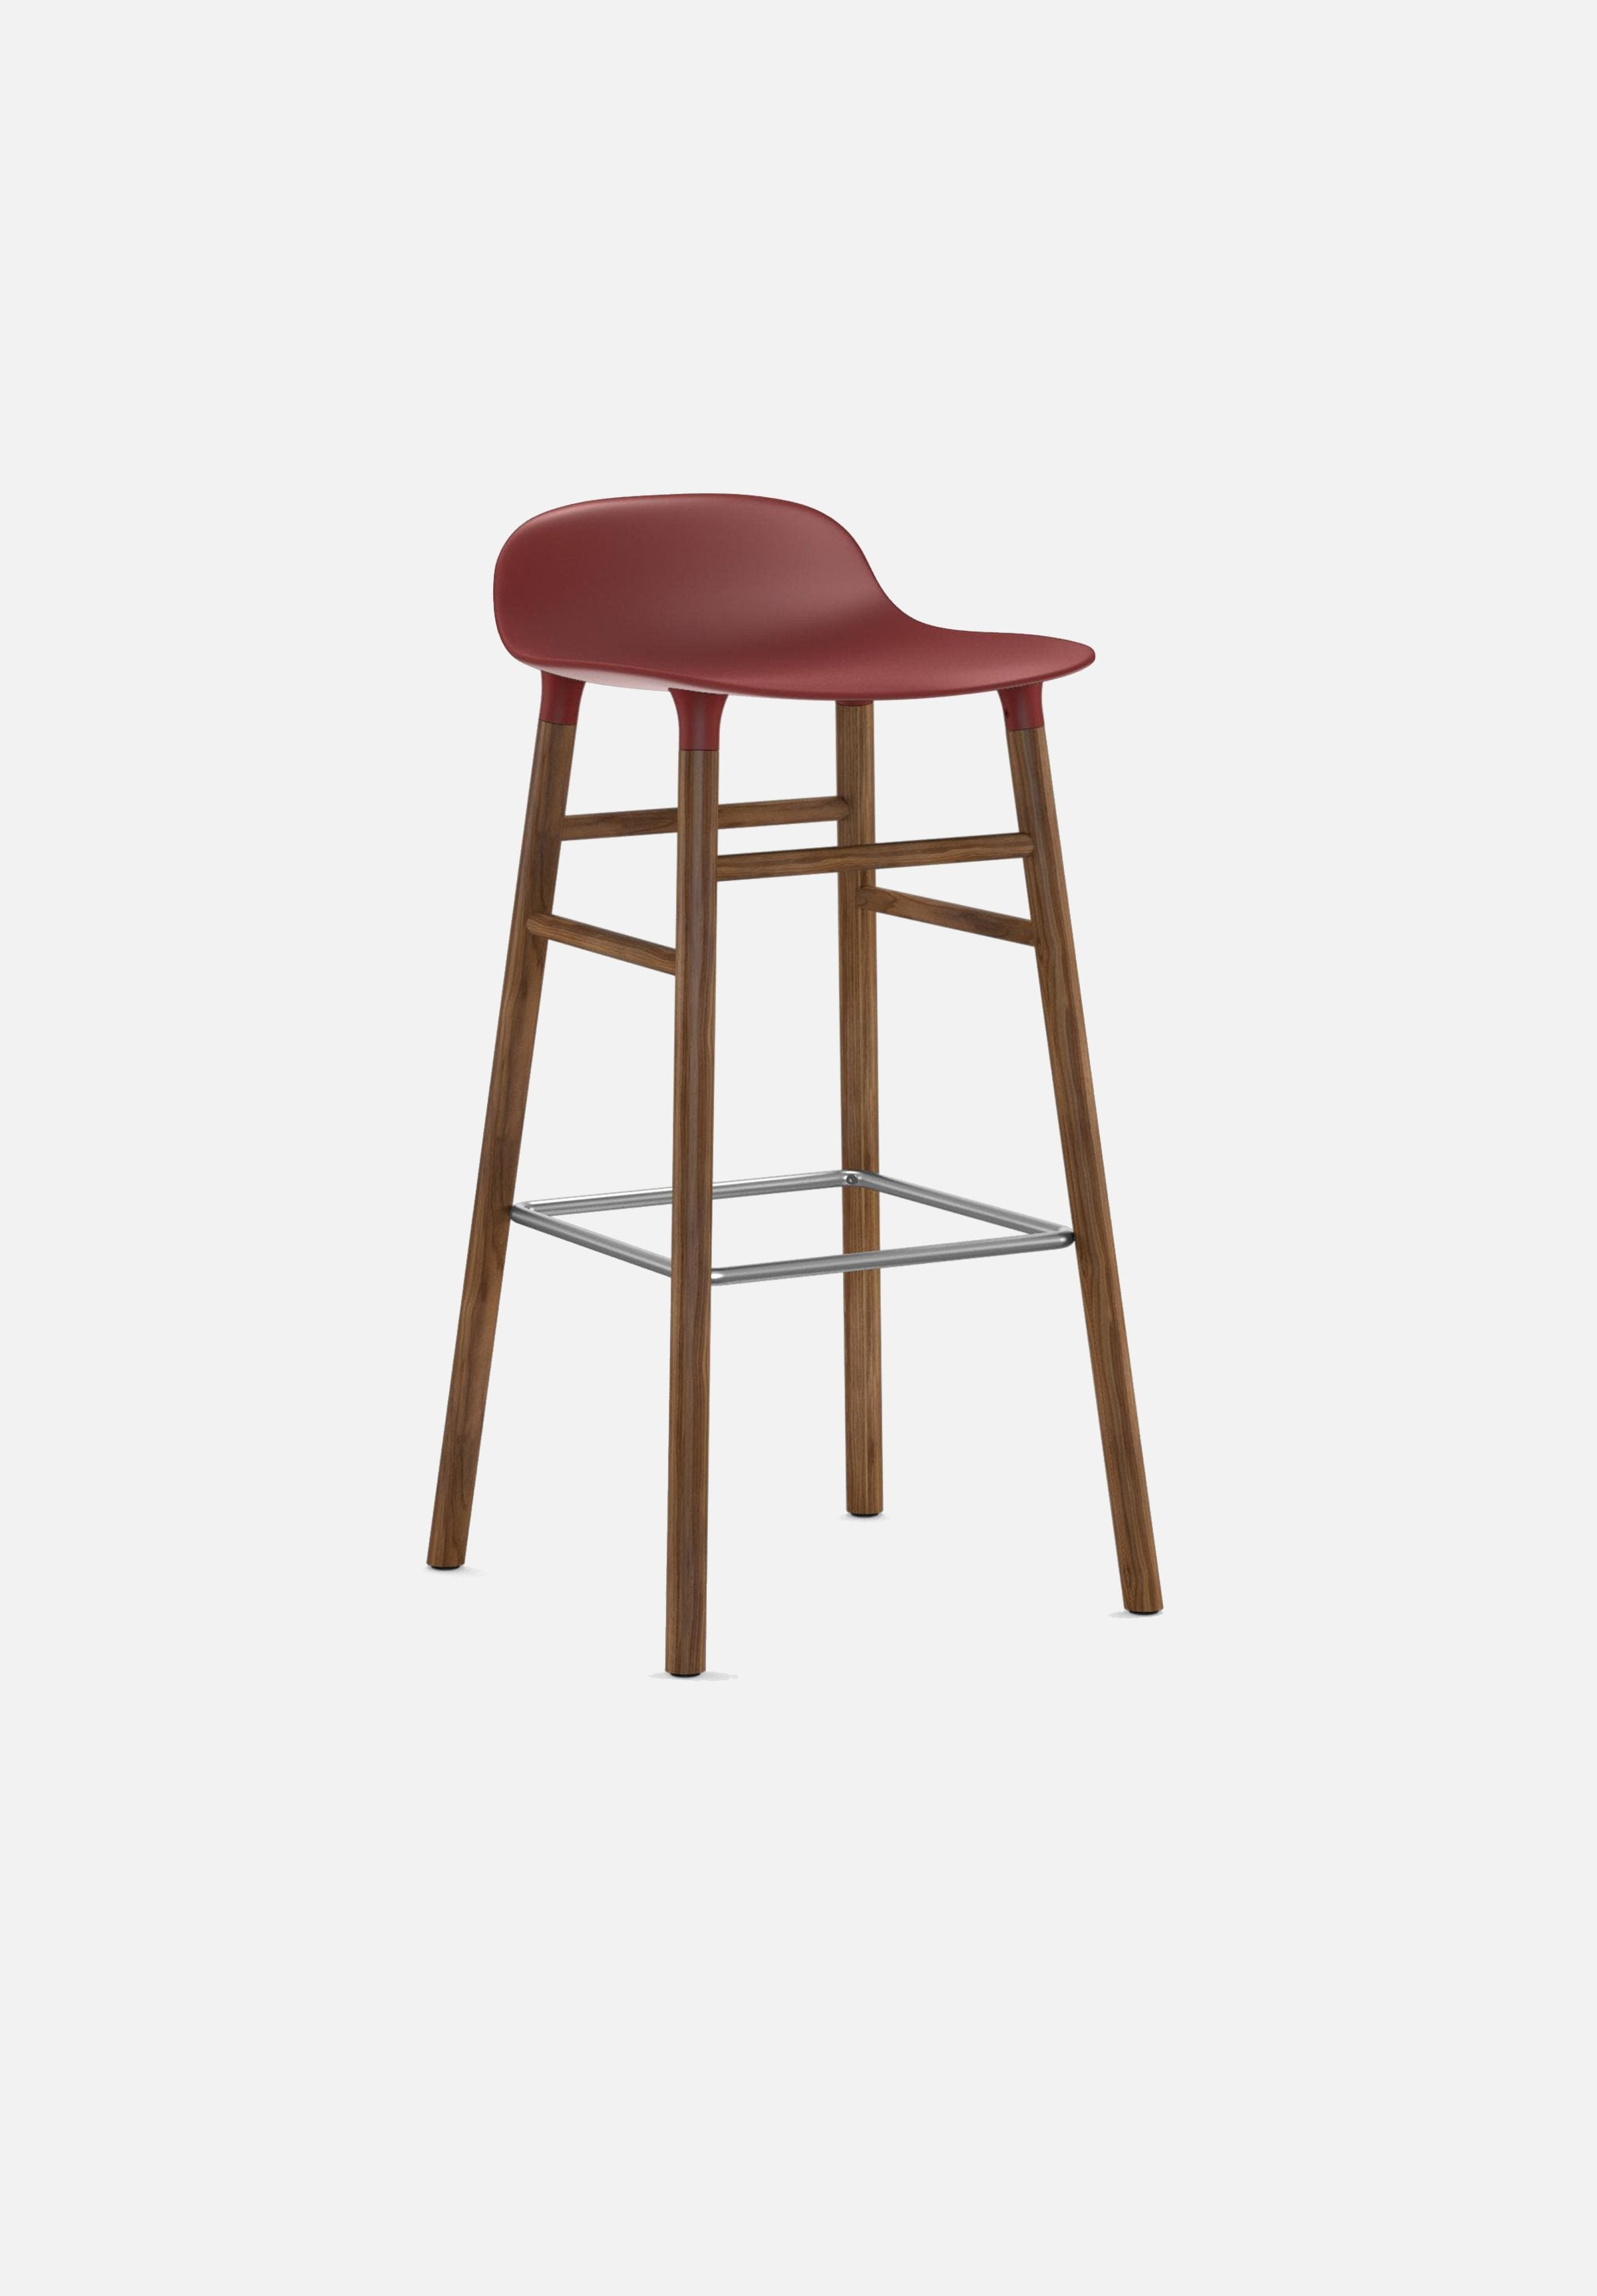 Form Stool — 75cm-Simon Legald-Normann Copenhagen-Red-Solid Walnut-Average-canada-design-store-danish-denmark-furniture-interior